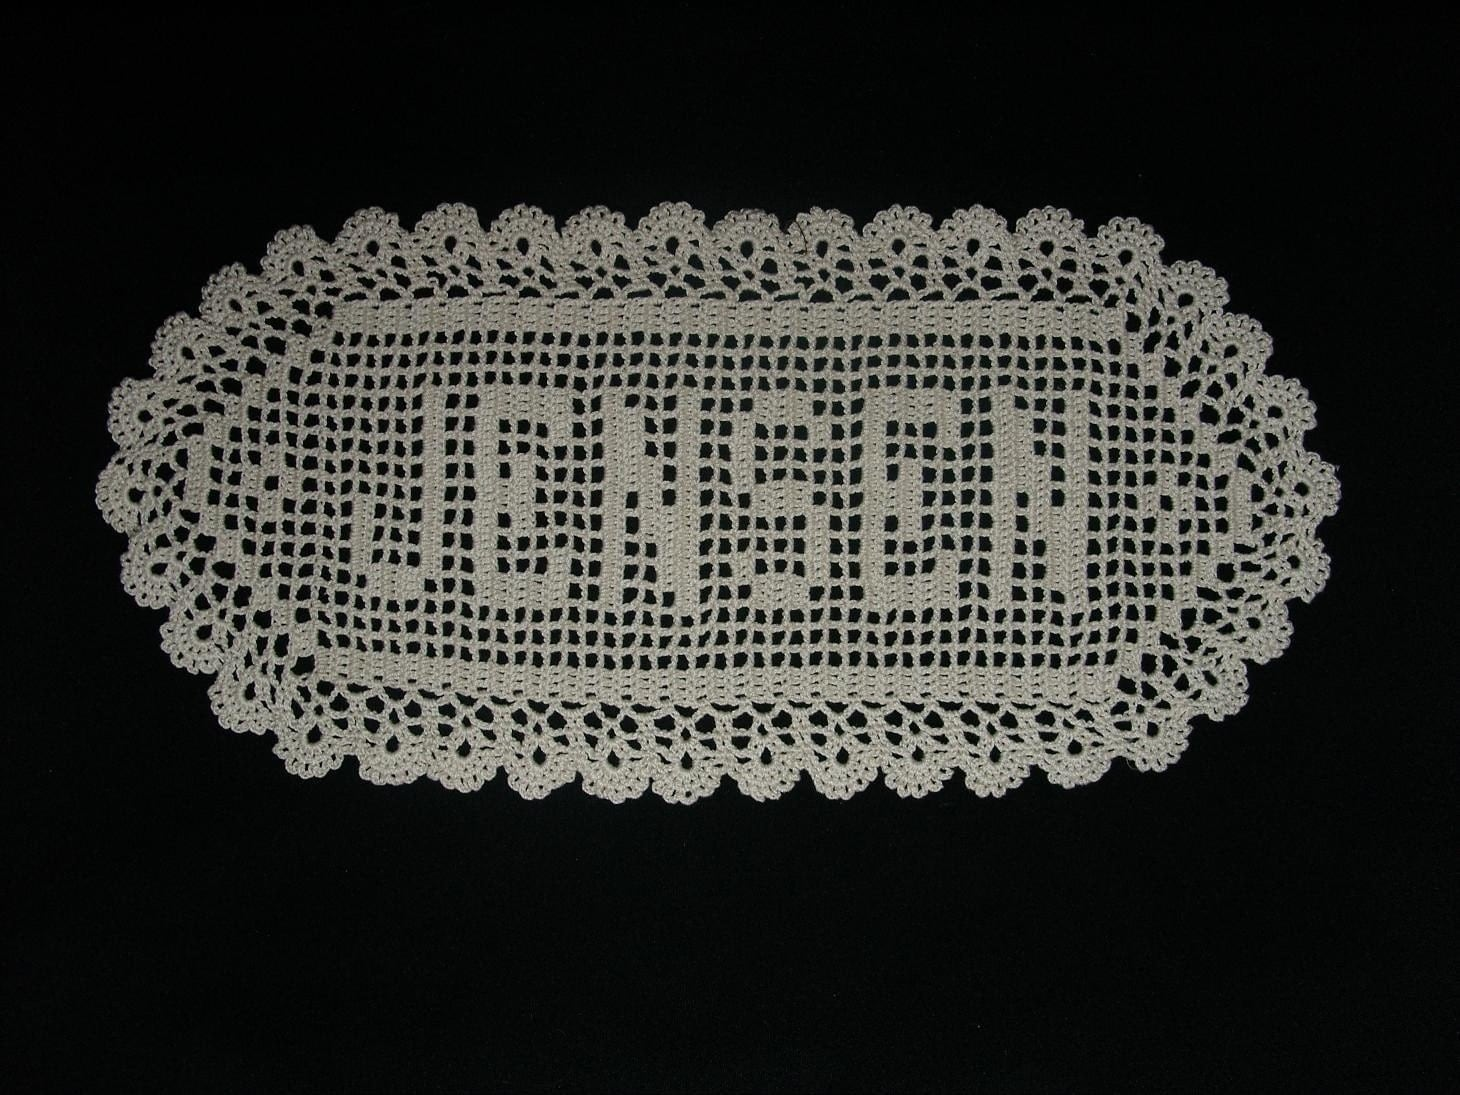 ... filet crochet name doily crochet name doily any name heirloom crochet